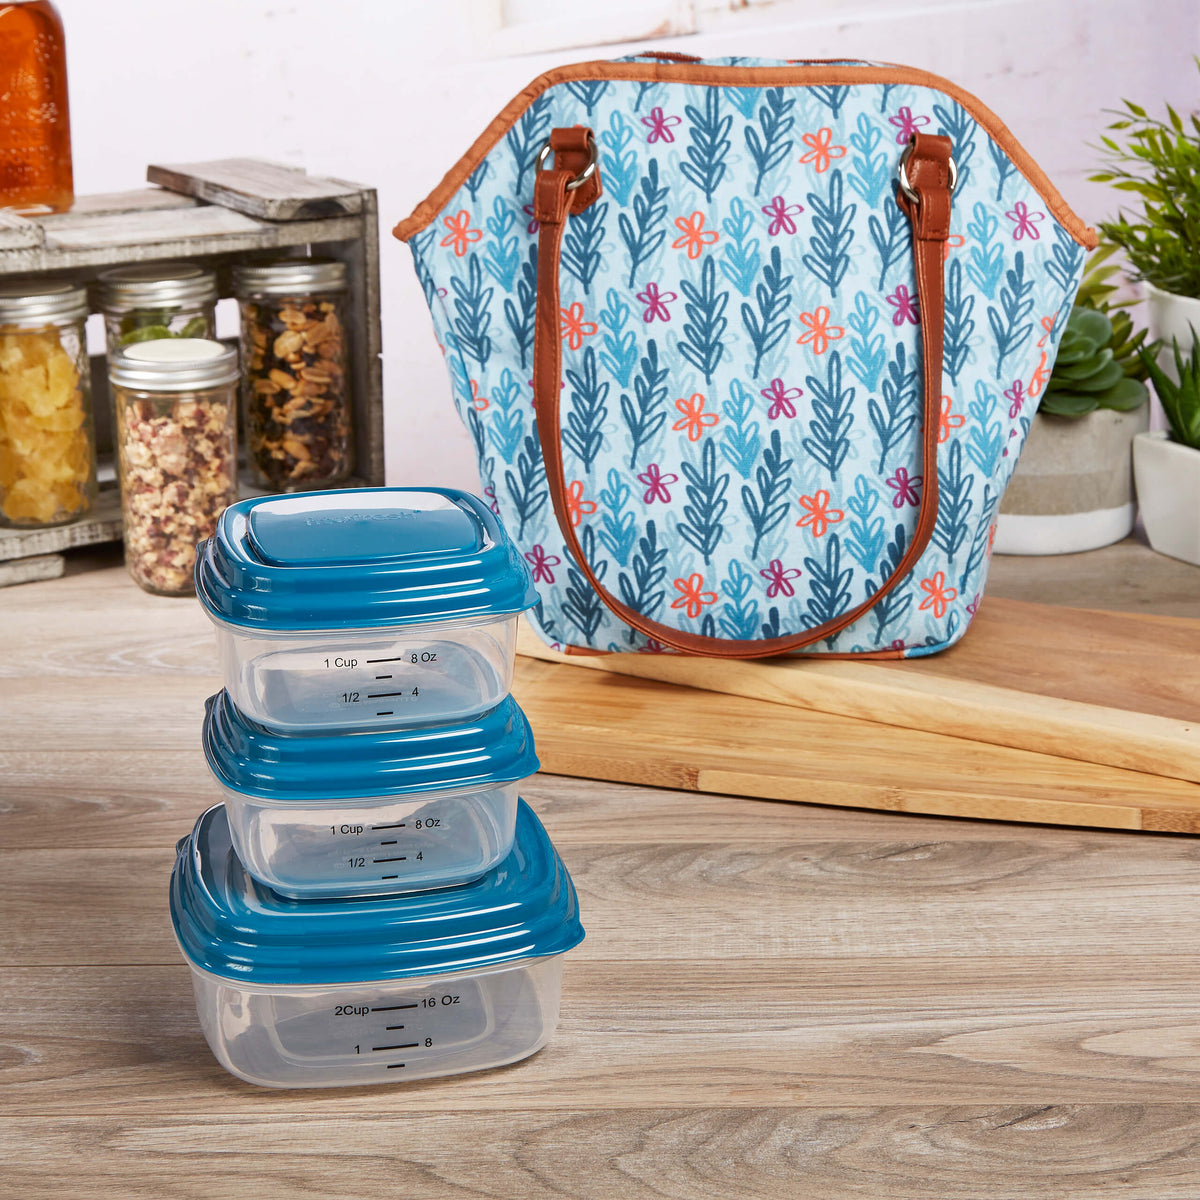 Riverdale Insulated Lunch Bag Set With Reusable Containers